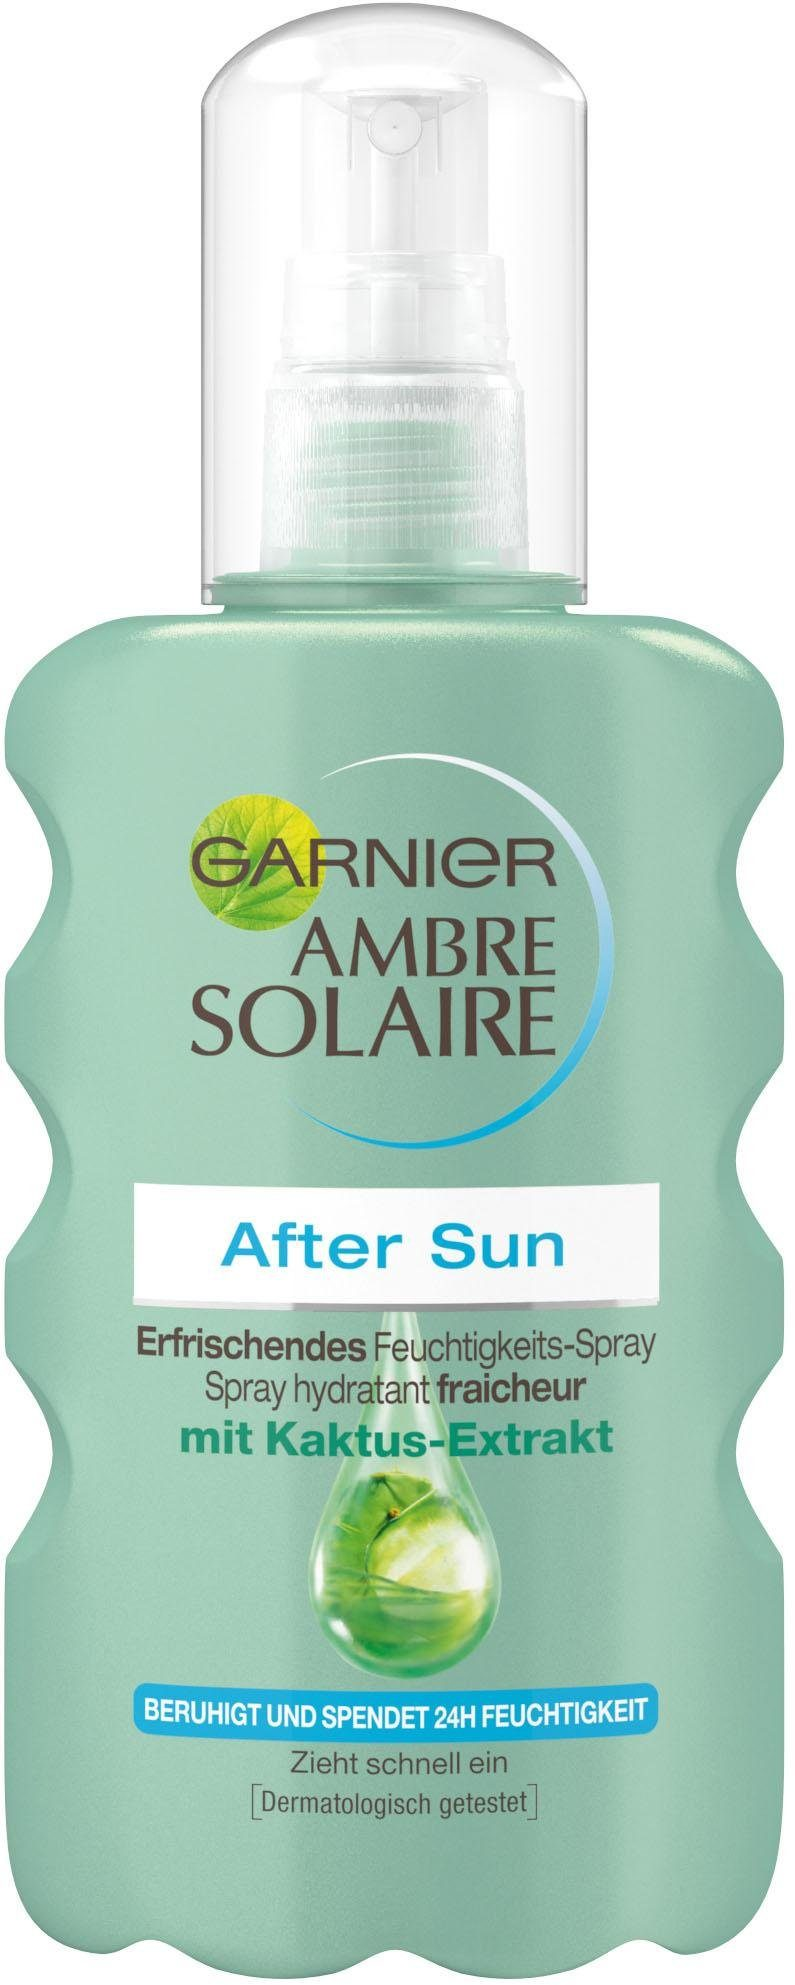 GARNIER After Sun-Spray »Ambre Solaire Feuchtigkeits-Après«, mit Kaktus-Extrakt